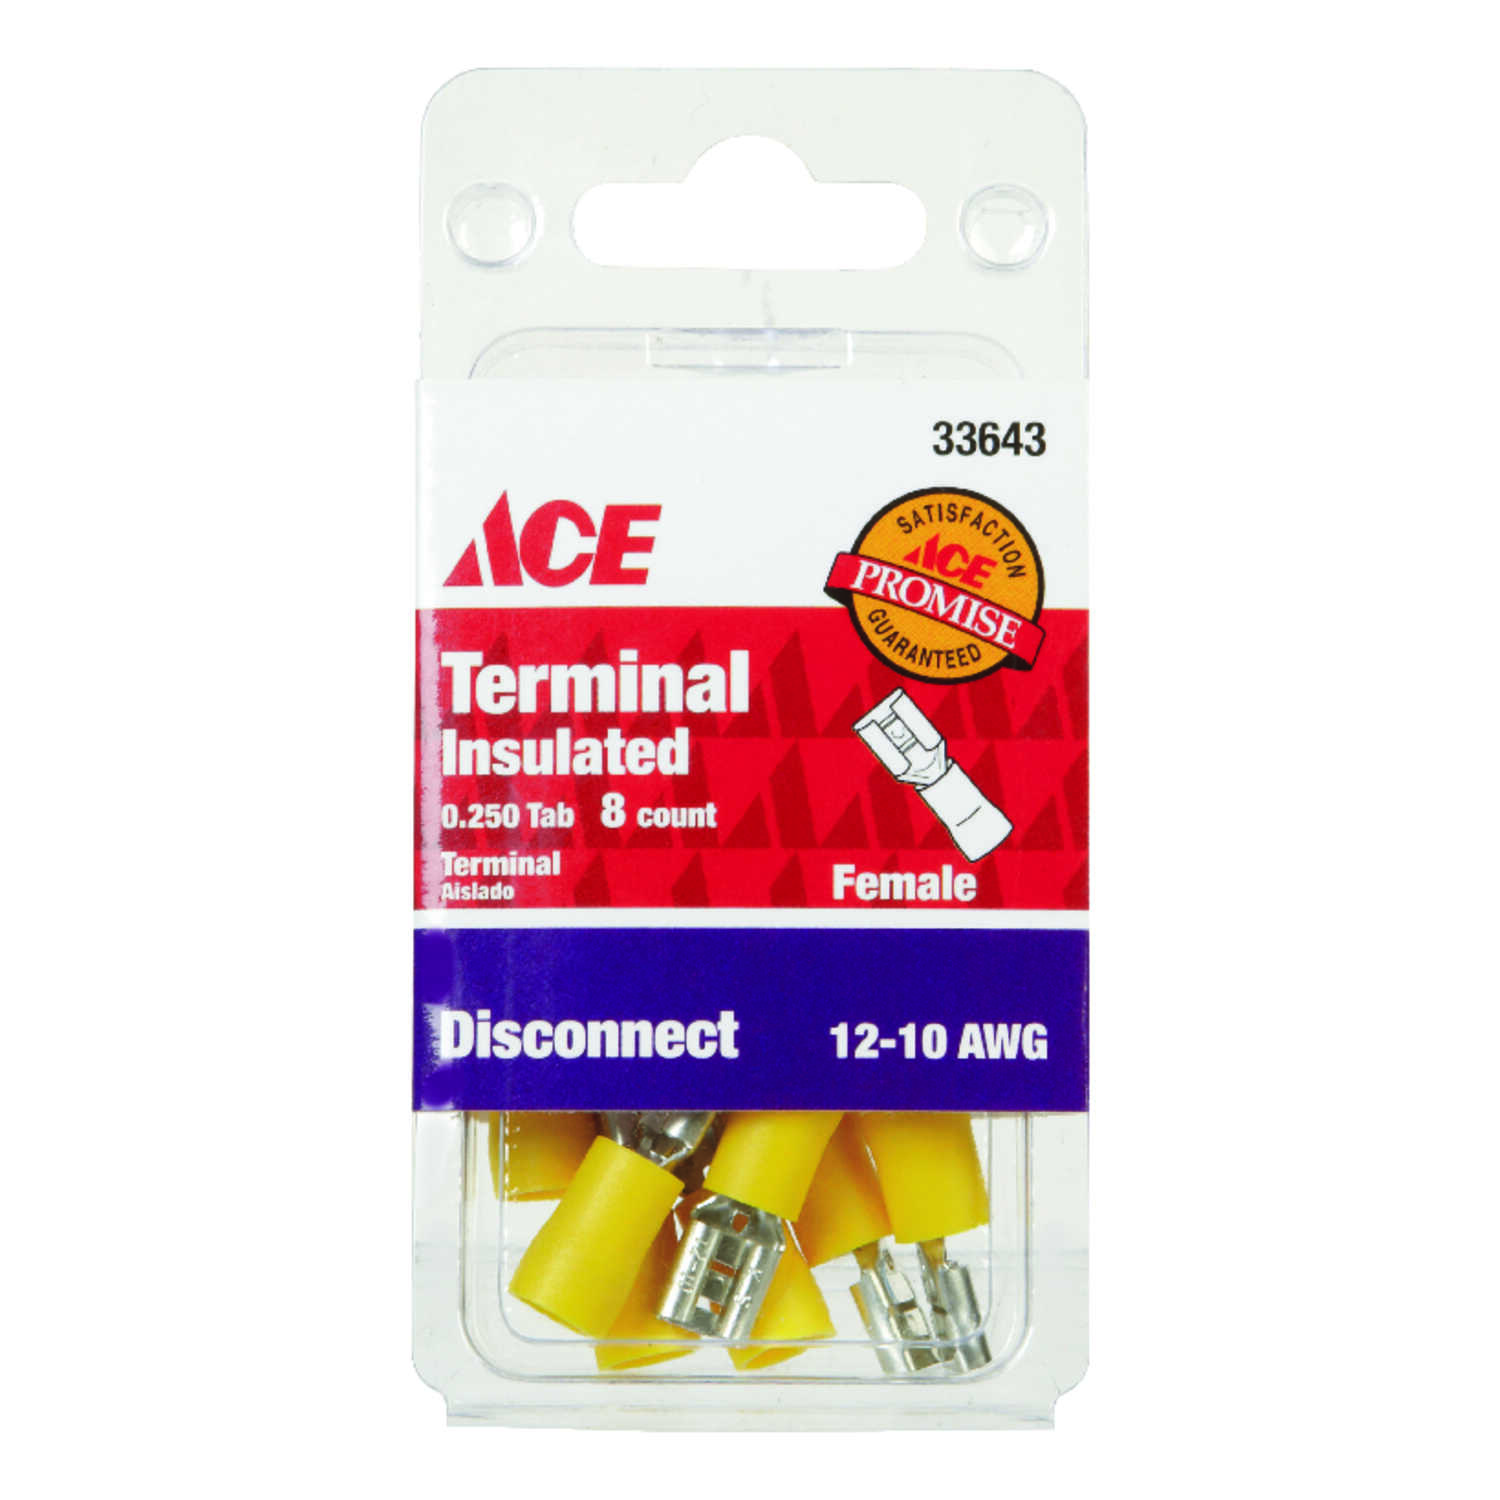 Ace  Female Disconnect  12-10 AWG 8  Insulated Wire